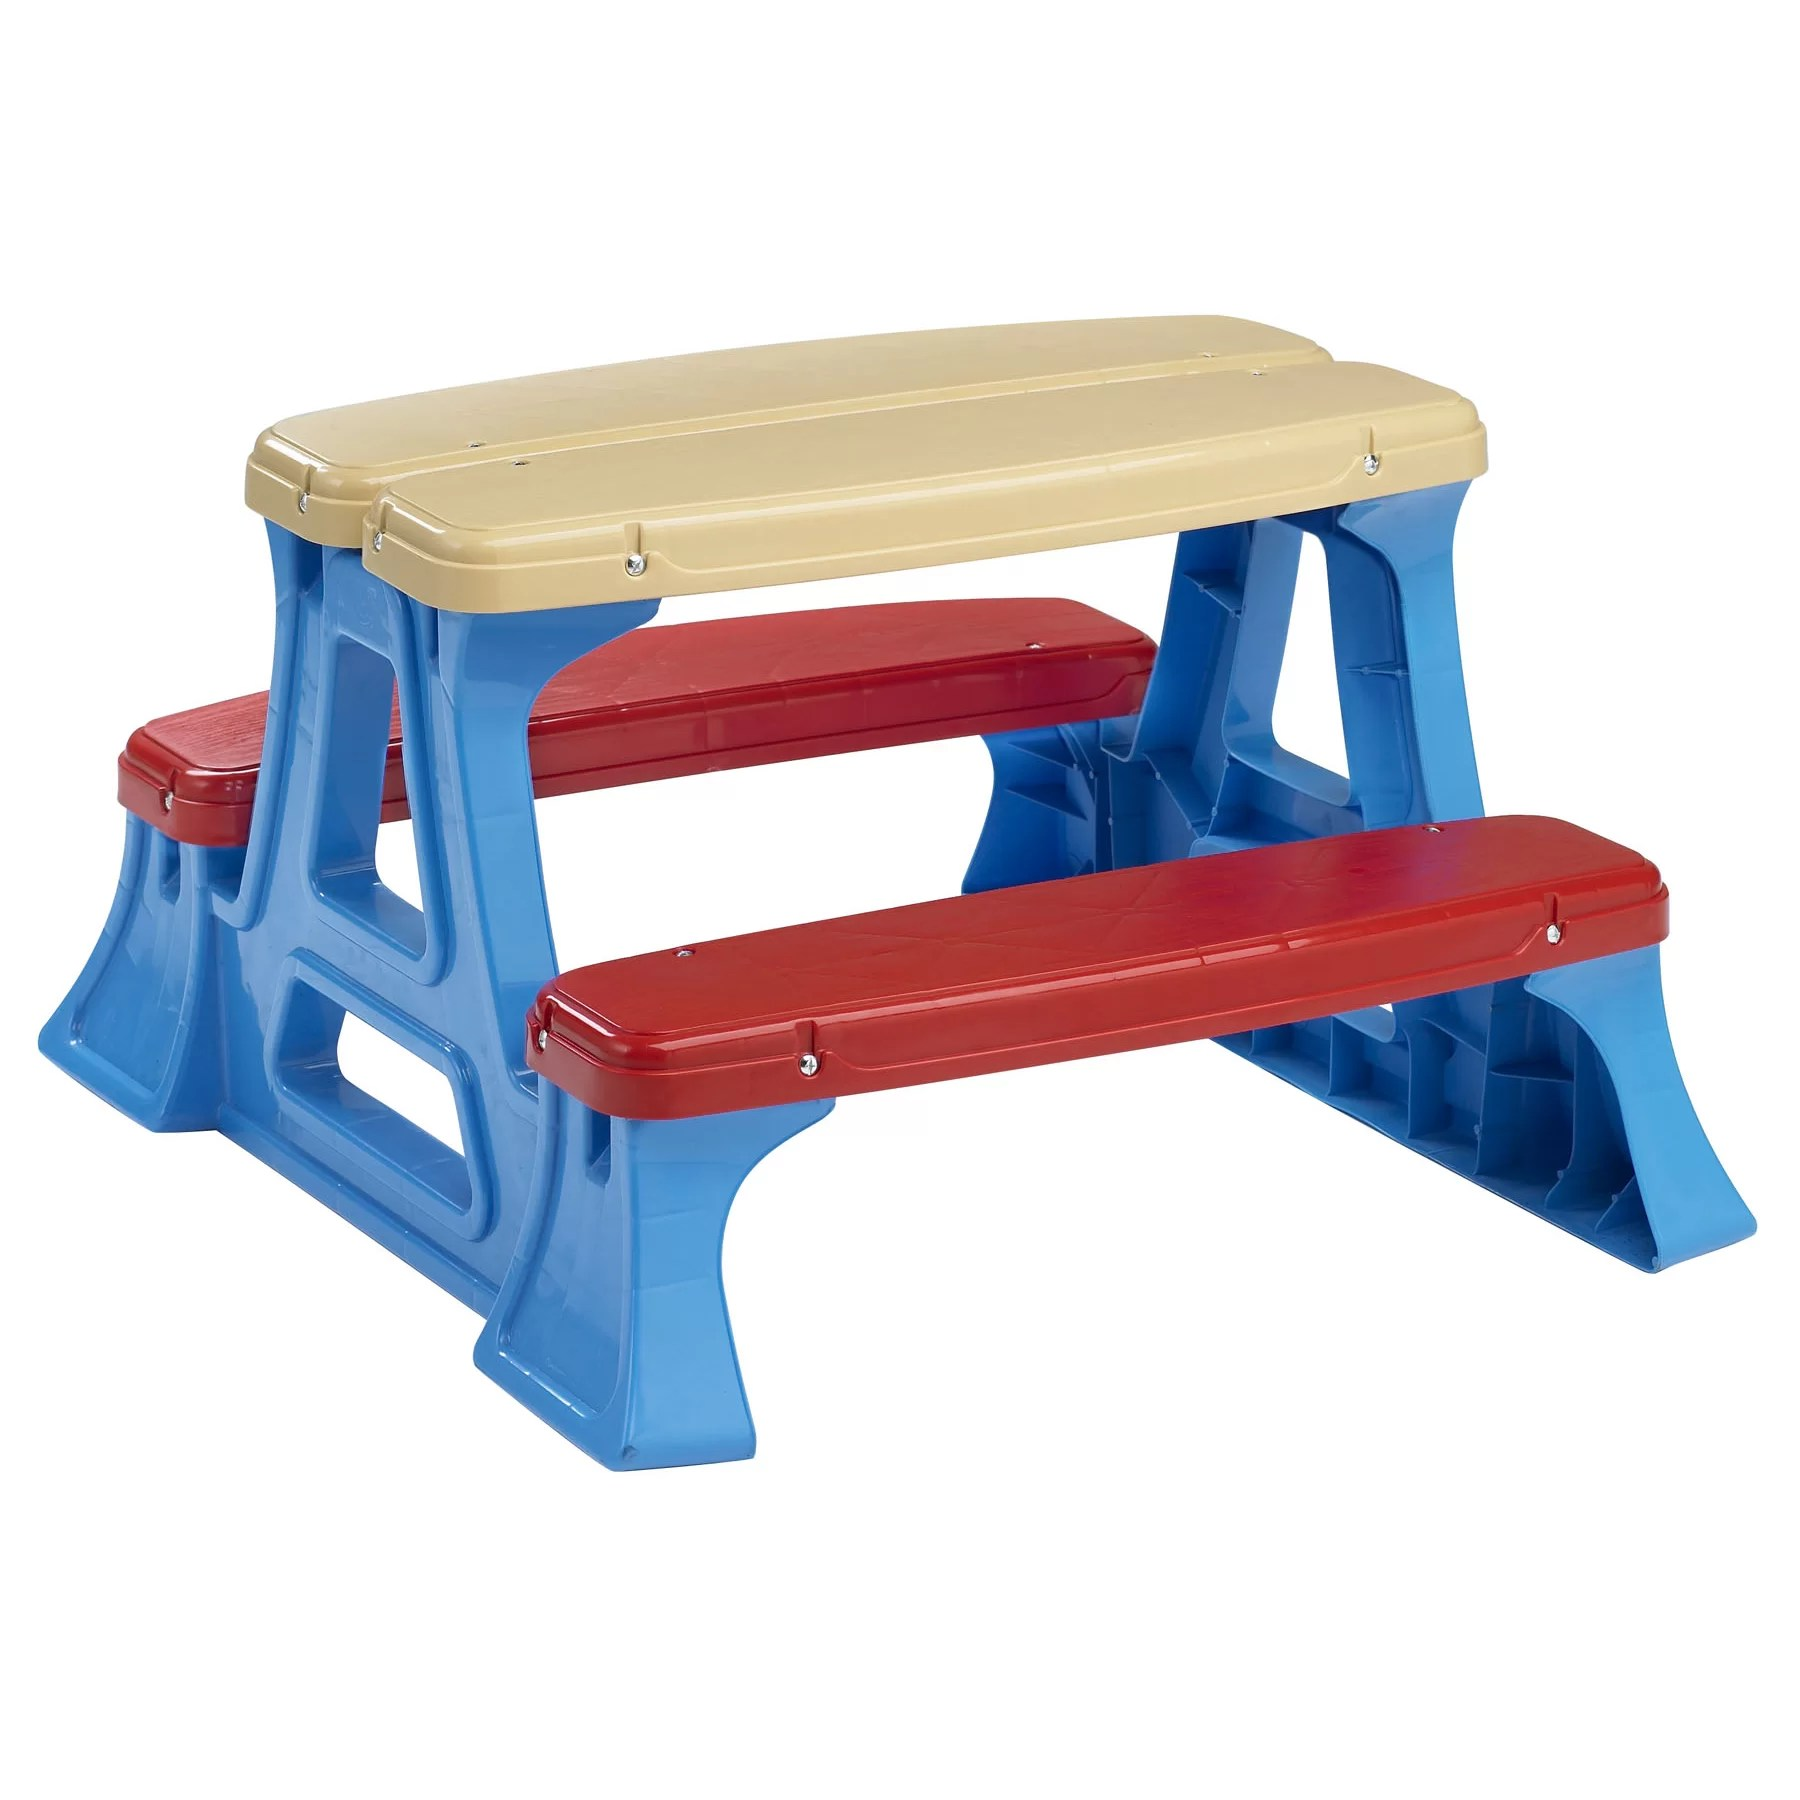 Plastic Toddler Chairs American Plastic Toys Kids Picnic Table And Reviews Wayfair